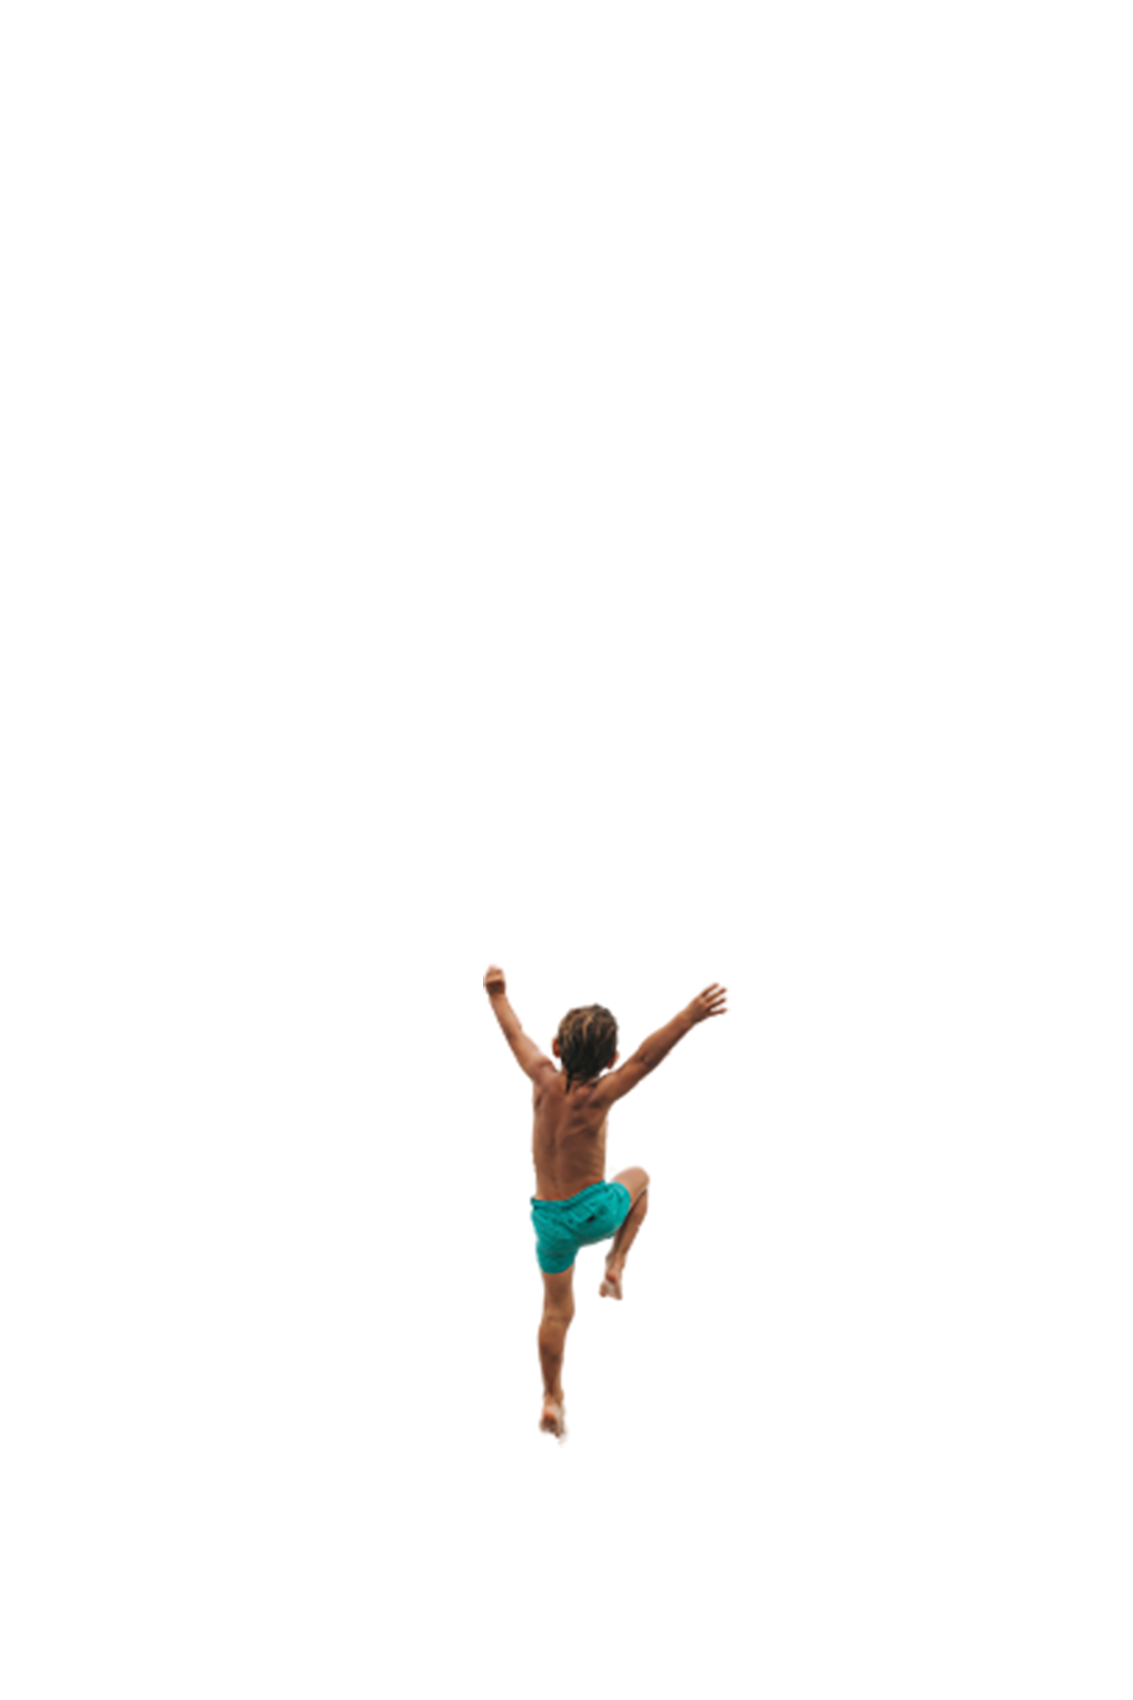 Young boy running and jumping transparent background PNG